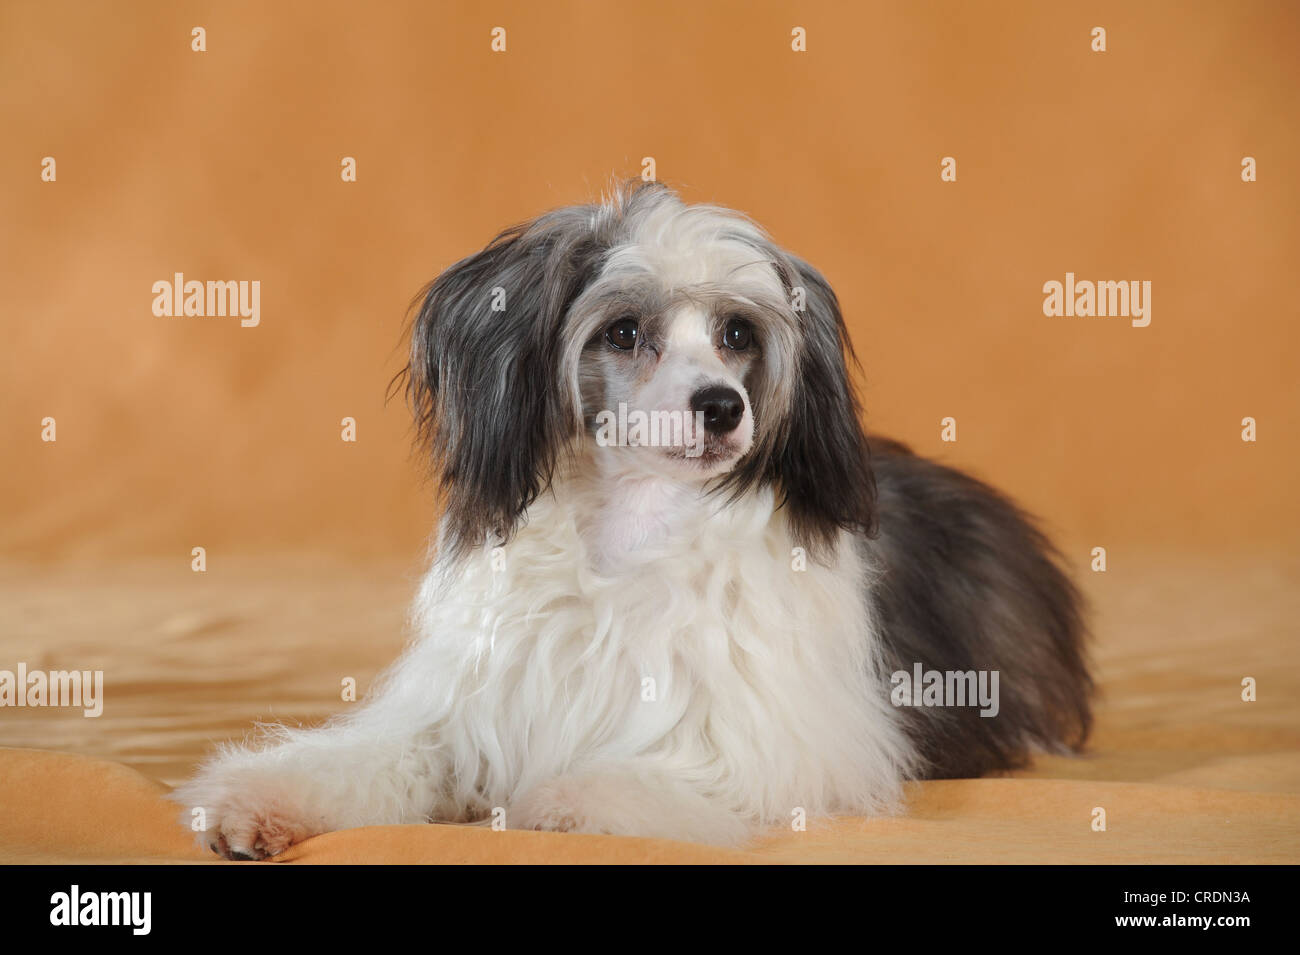 Chinese Crested Hairless Dog, Powderpuff, lying - Stock Image